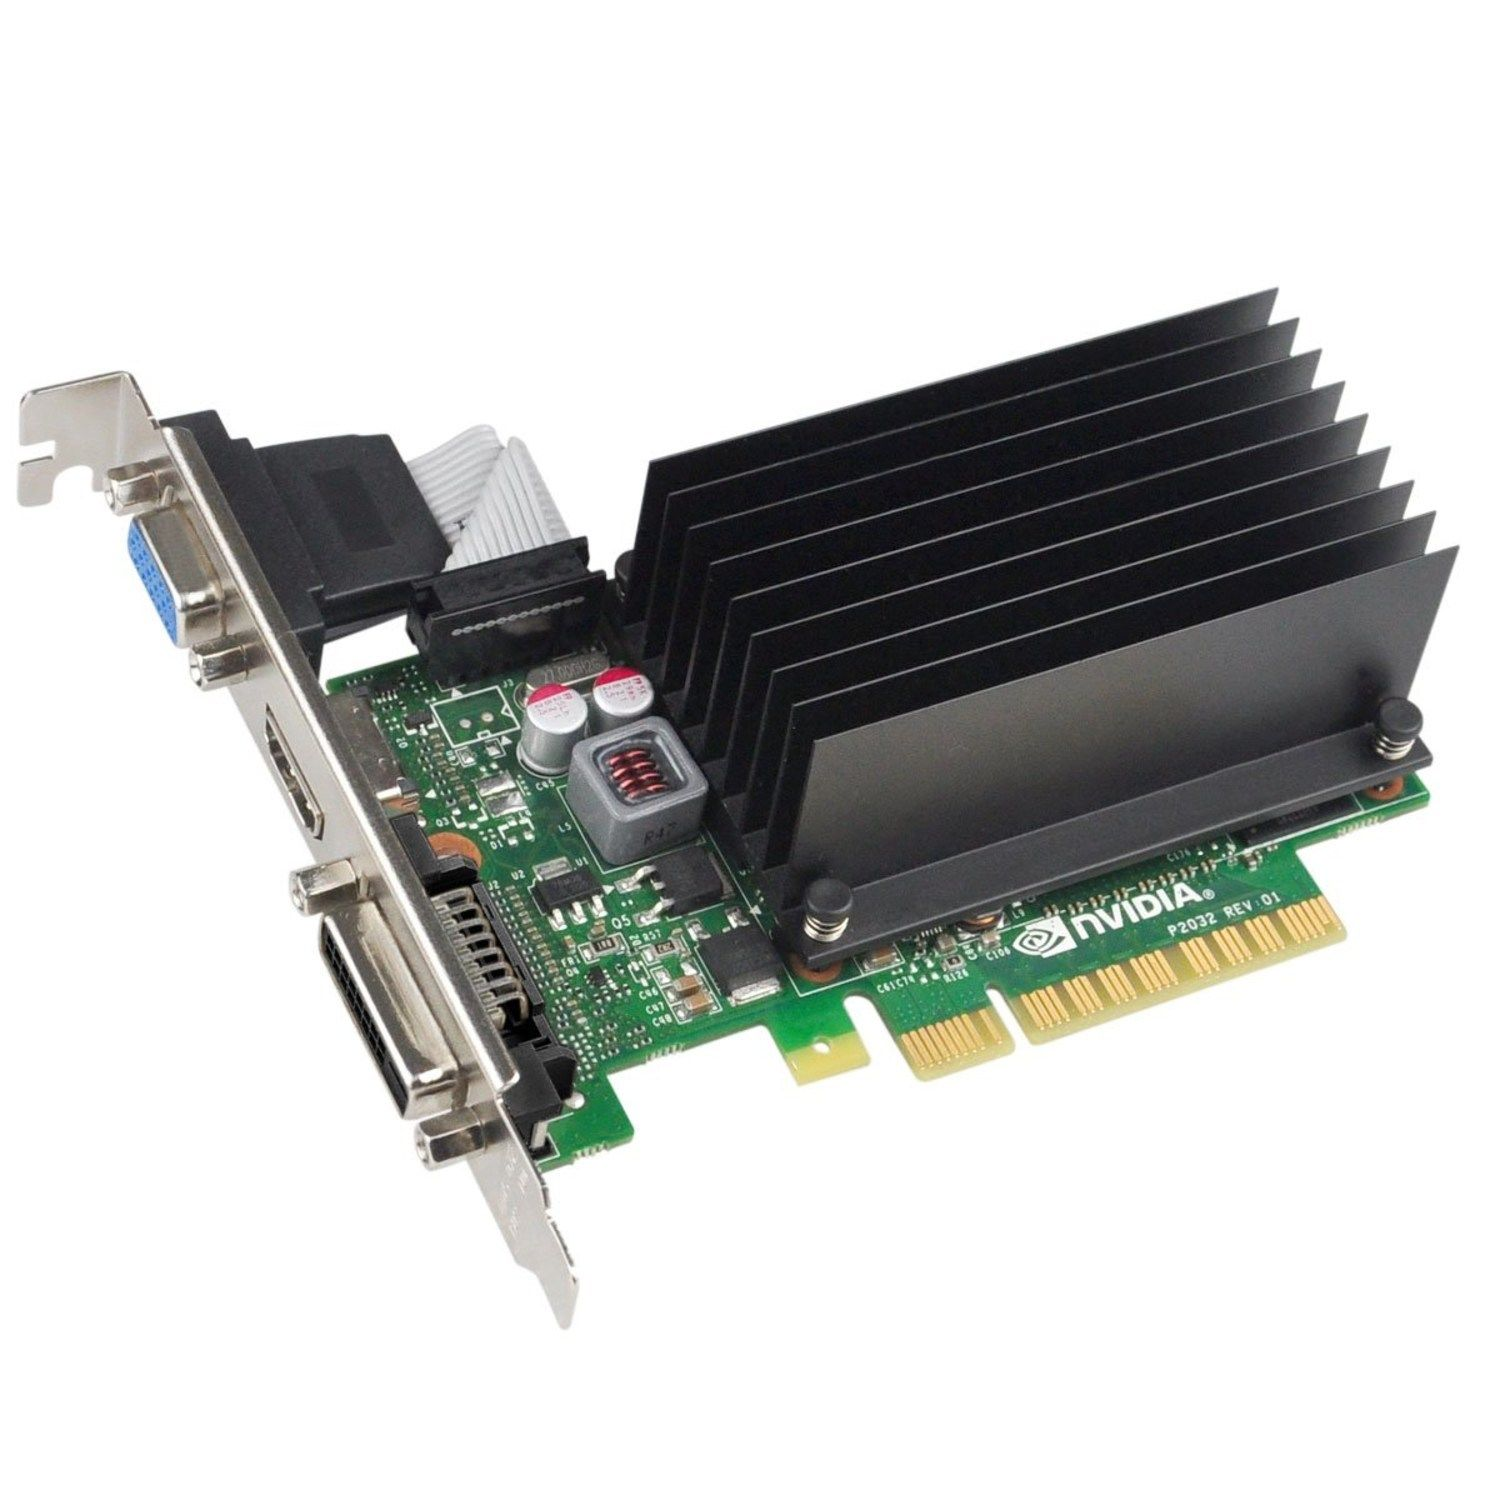 EVGA 01GP32722KR NVIDIA GEFORCE GT 720 1GB DDR3 DVI PCI Express 2.0 x 8 HDM VGA GRAPHICS CARDS.